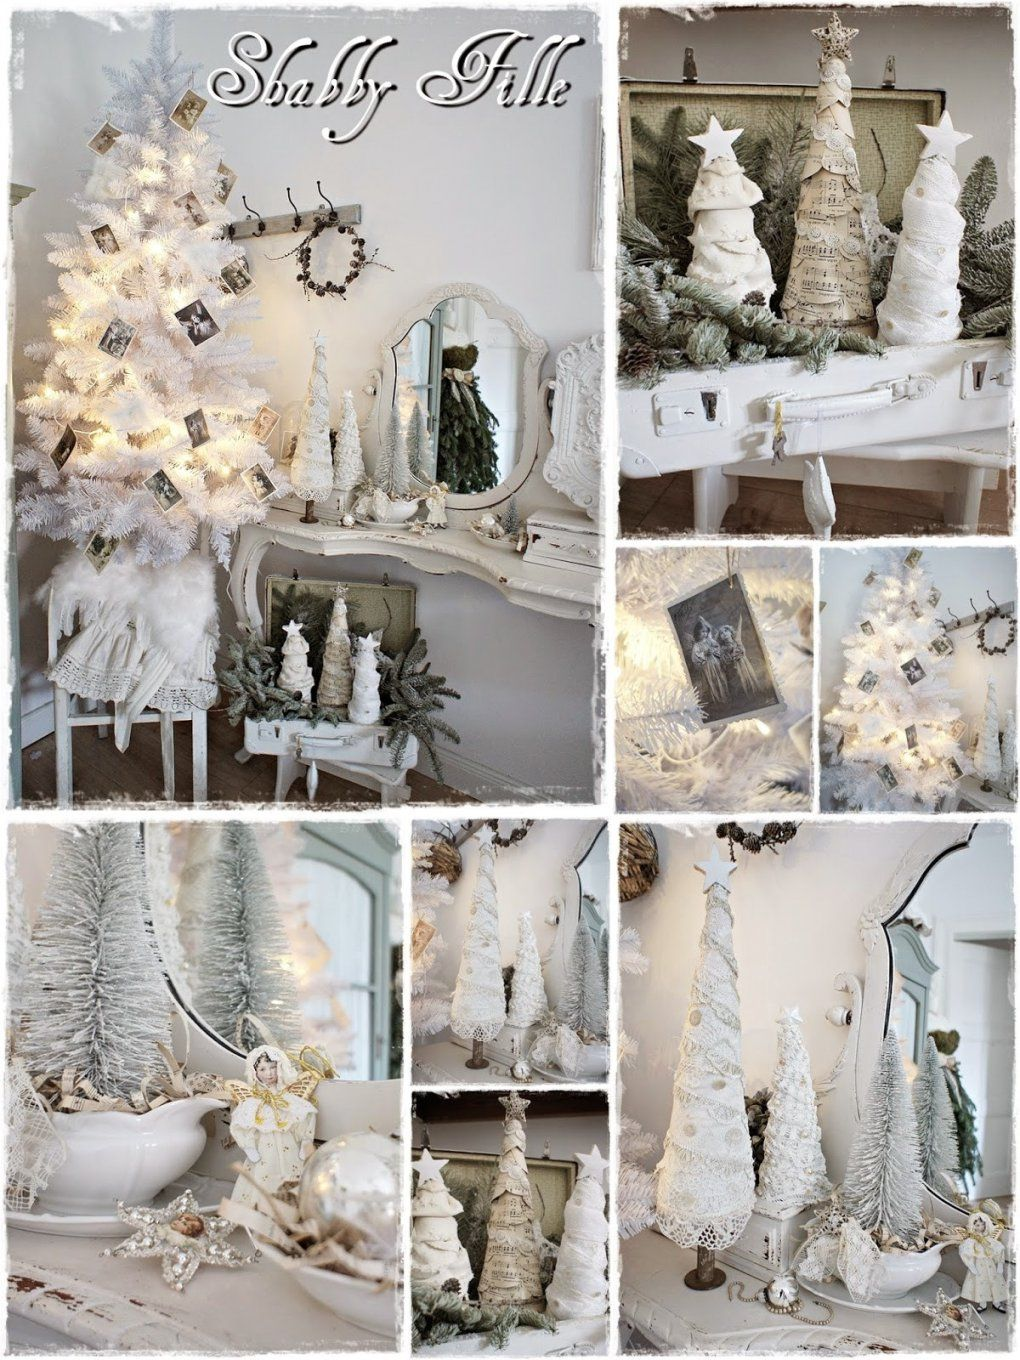 shabby chic deko ideen weihnachten das beste von diy adventskranz von shabby chic deko ideen. Black Bedroom Furniture Sets. Home Design Ideas